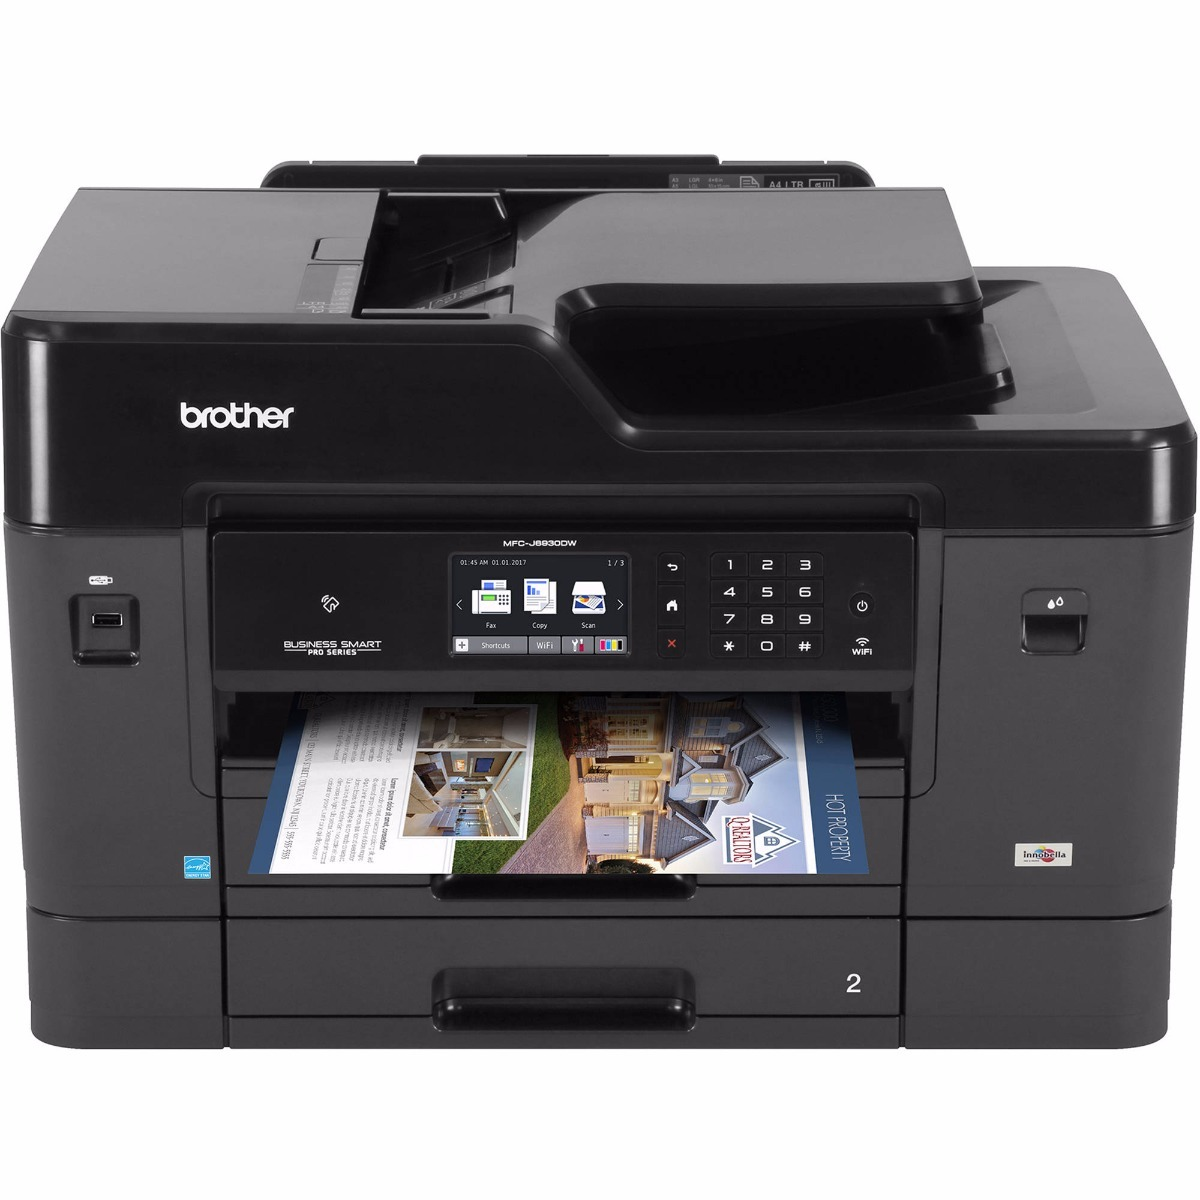 Multifuncional Brother Mfc J6930dw Tabloide Doble